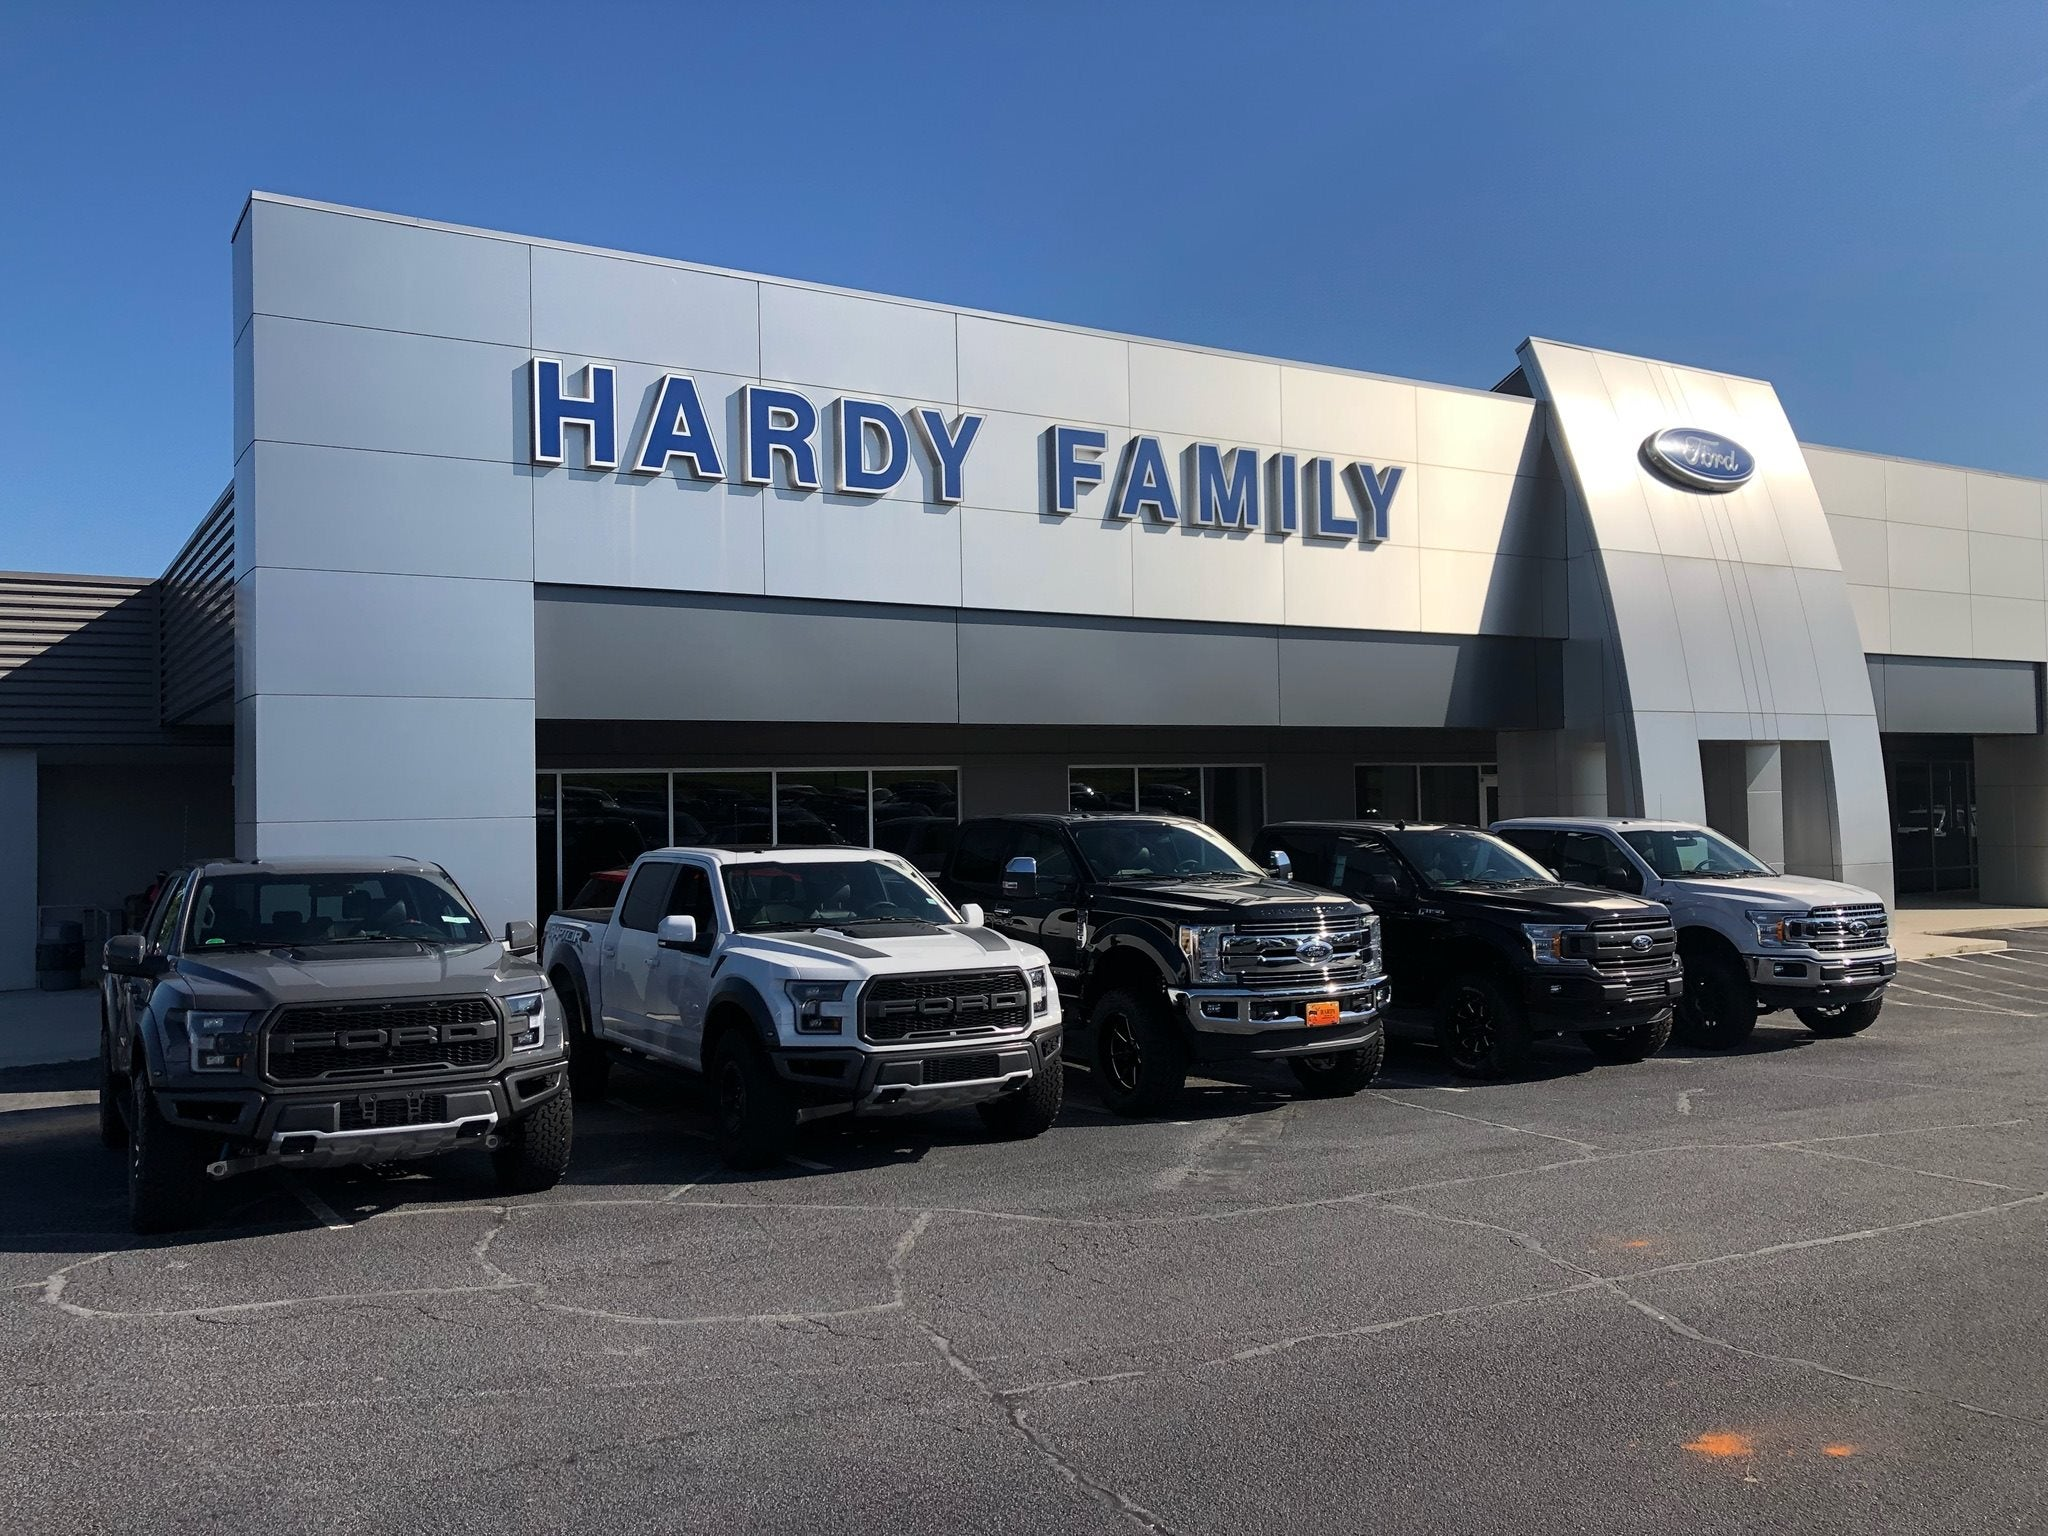 Ford Dealership Dallas >> Family Owned Ford Dealership Near Cedartown Hardy Family Ford